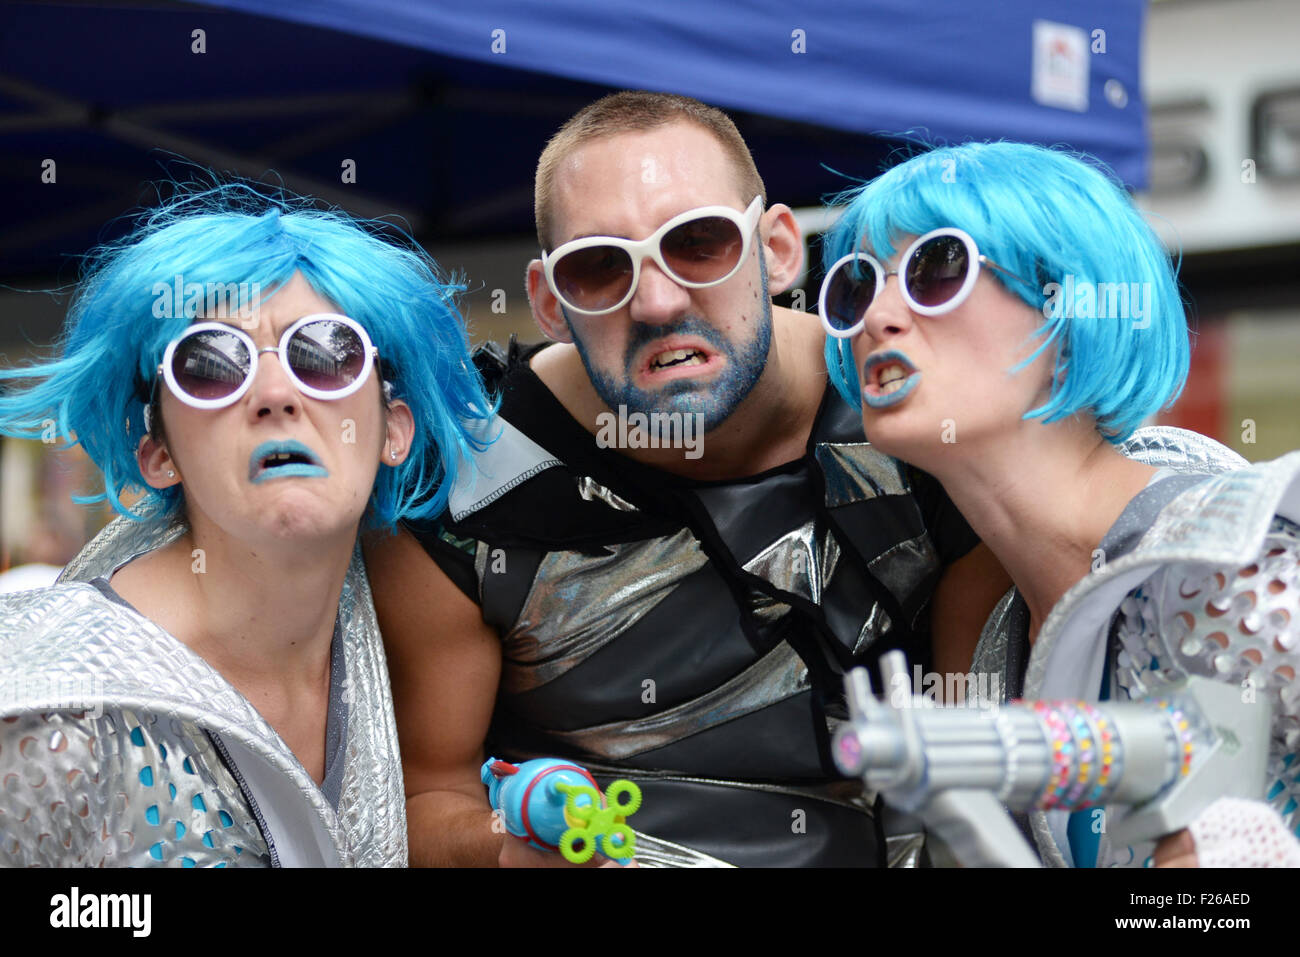 Saturday 18th july 2015  Taliesein Dance days event Swansea Kitsch & Sync perform in Swansea City Centre - Stock Image